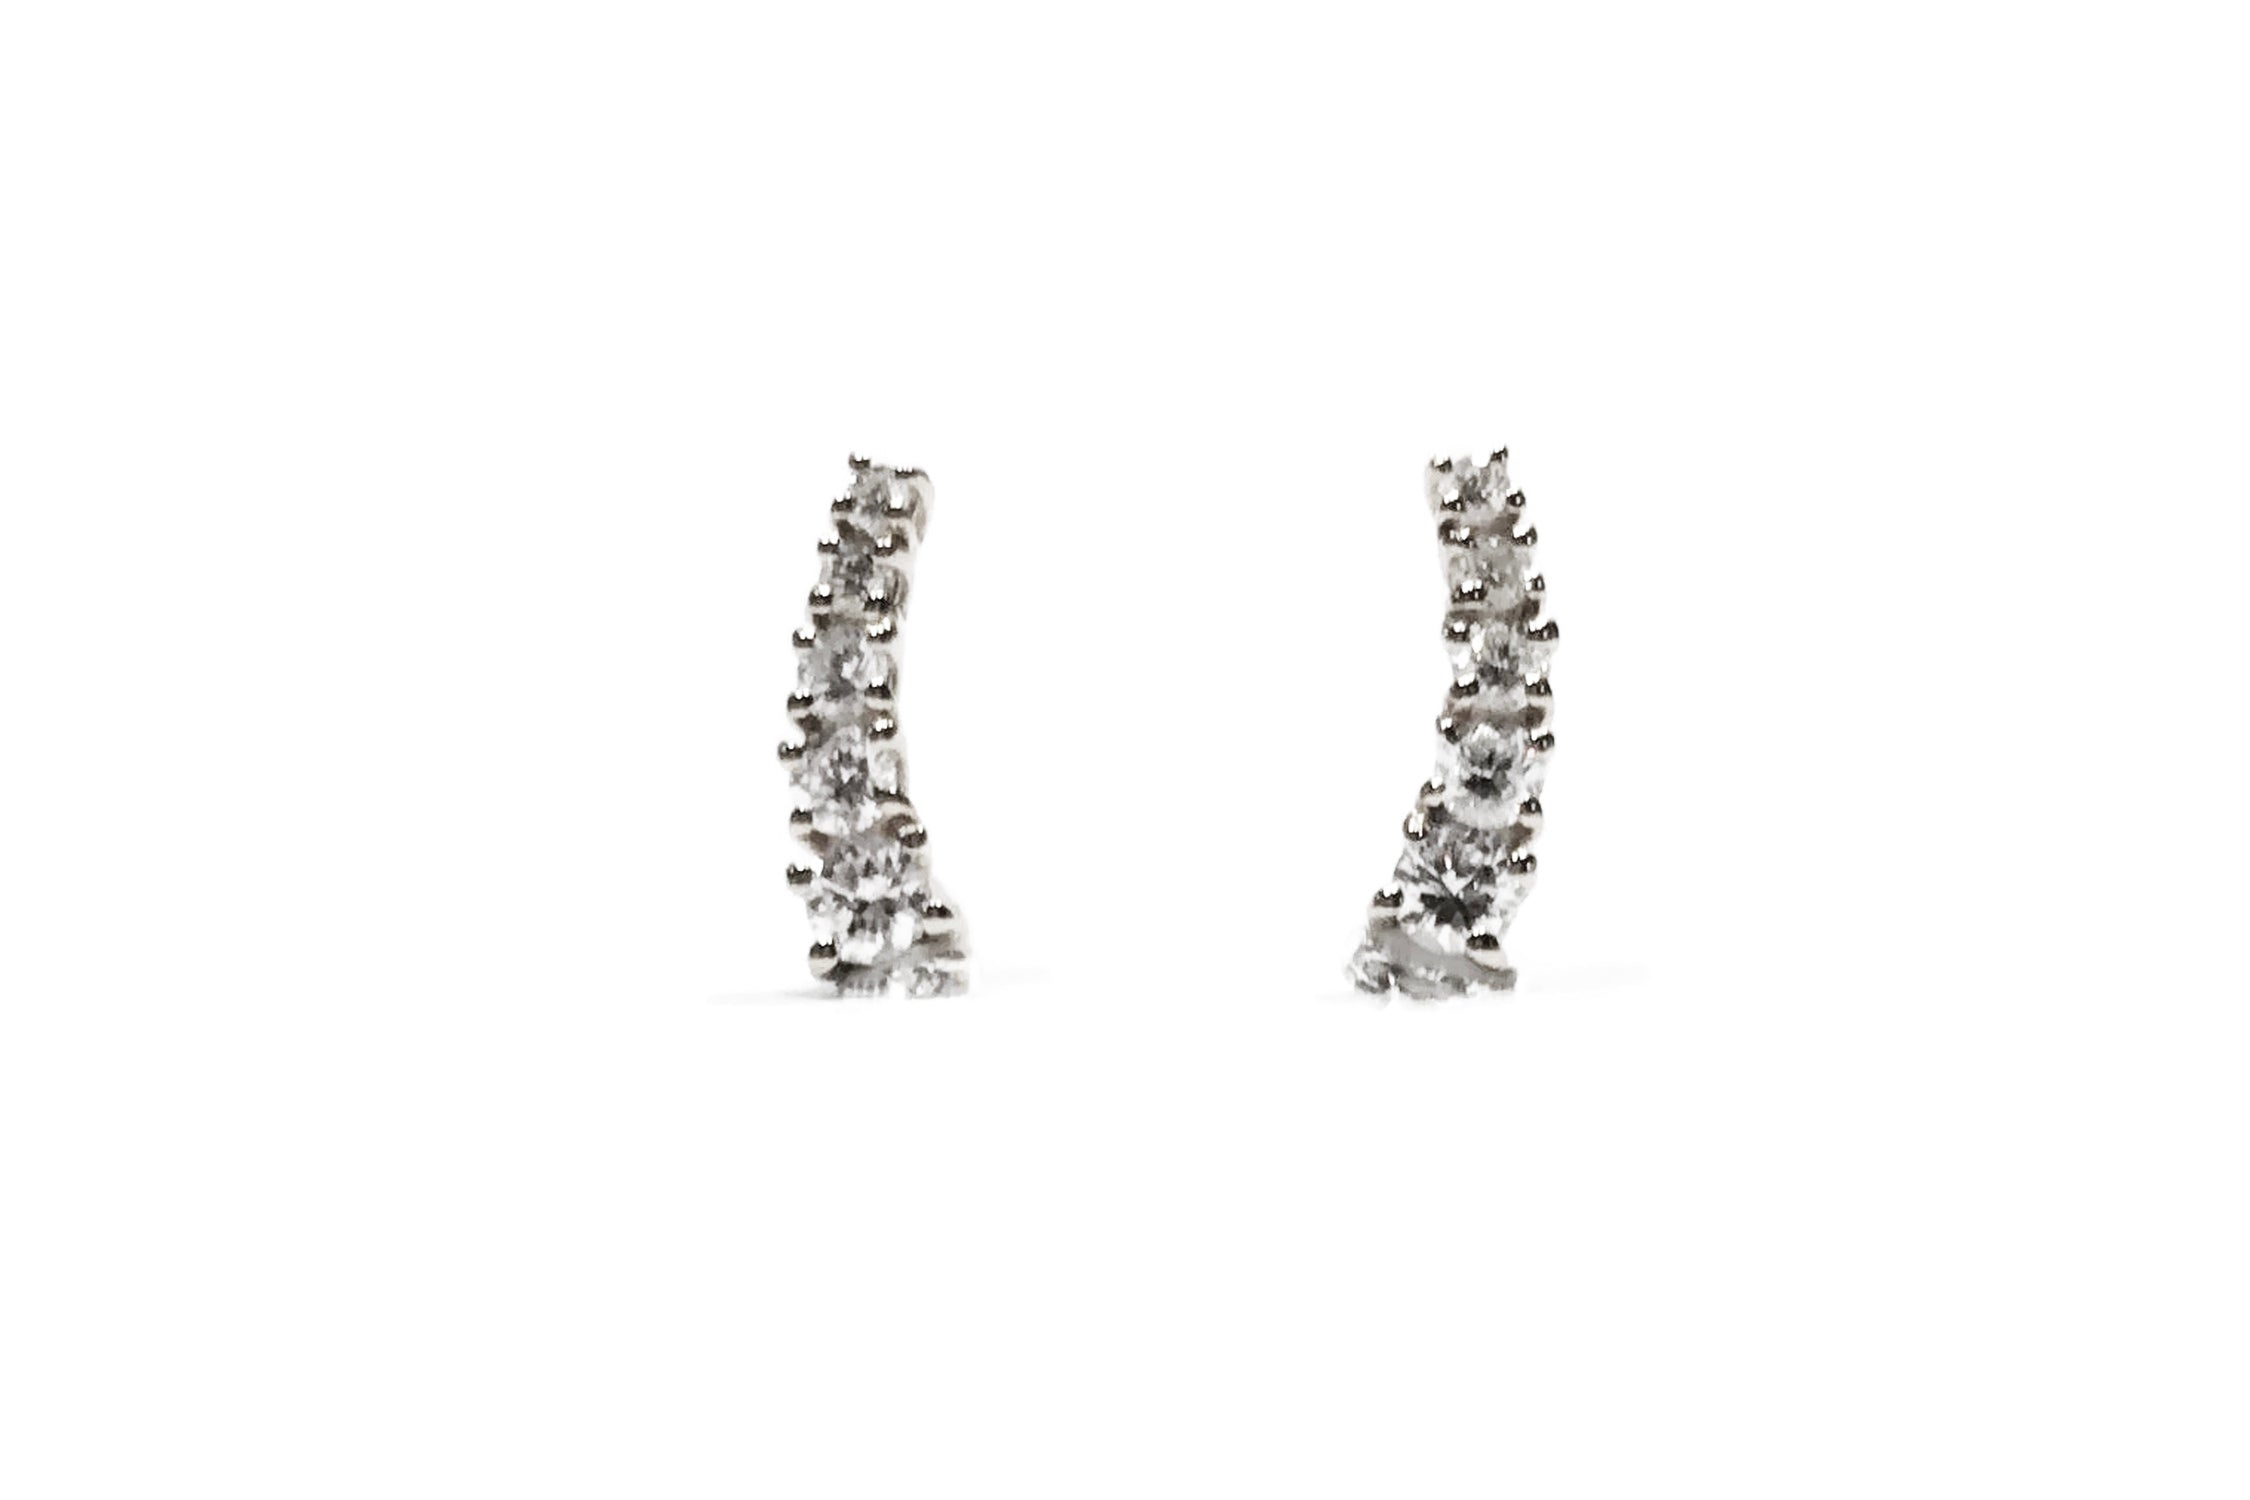 AF-JEWELERS-CLIMBER-DIAMOND-STUD-EARRINGS-WHITE-GOLD-HE01516